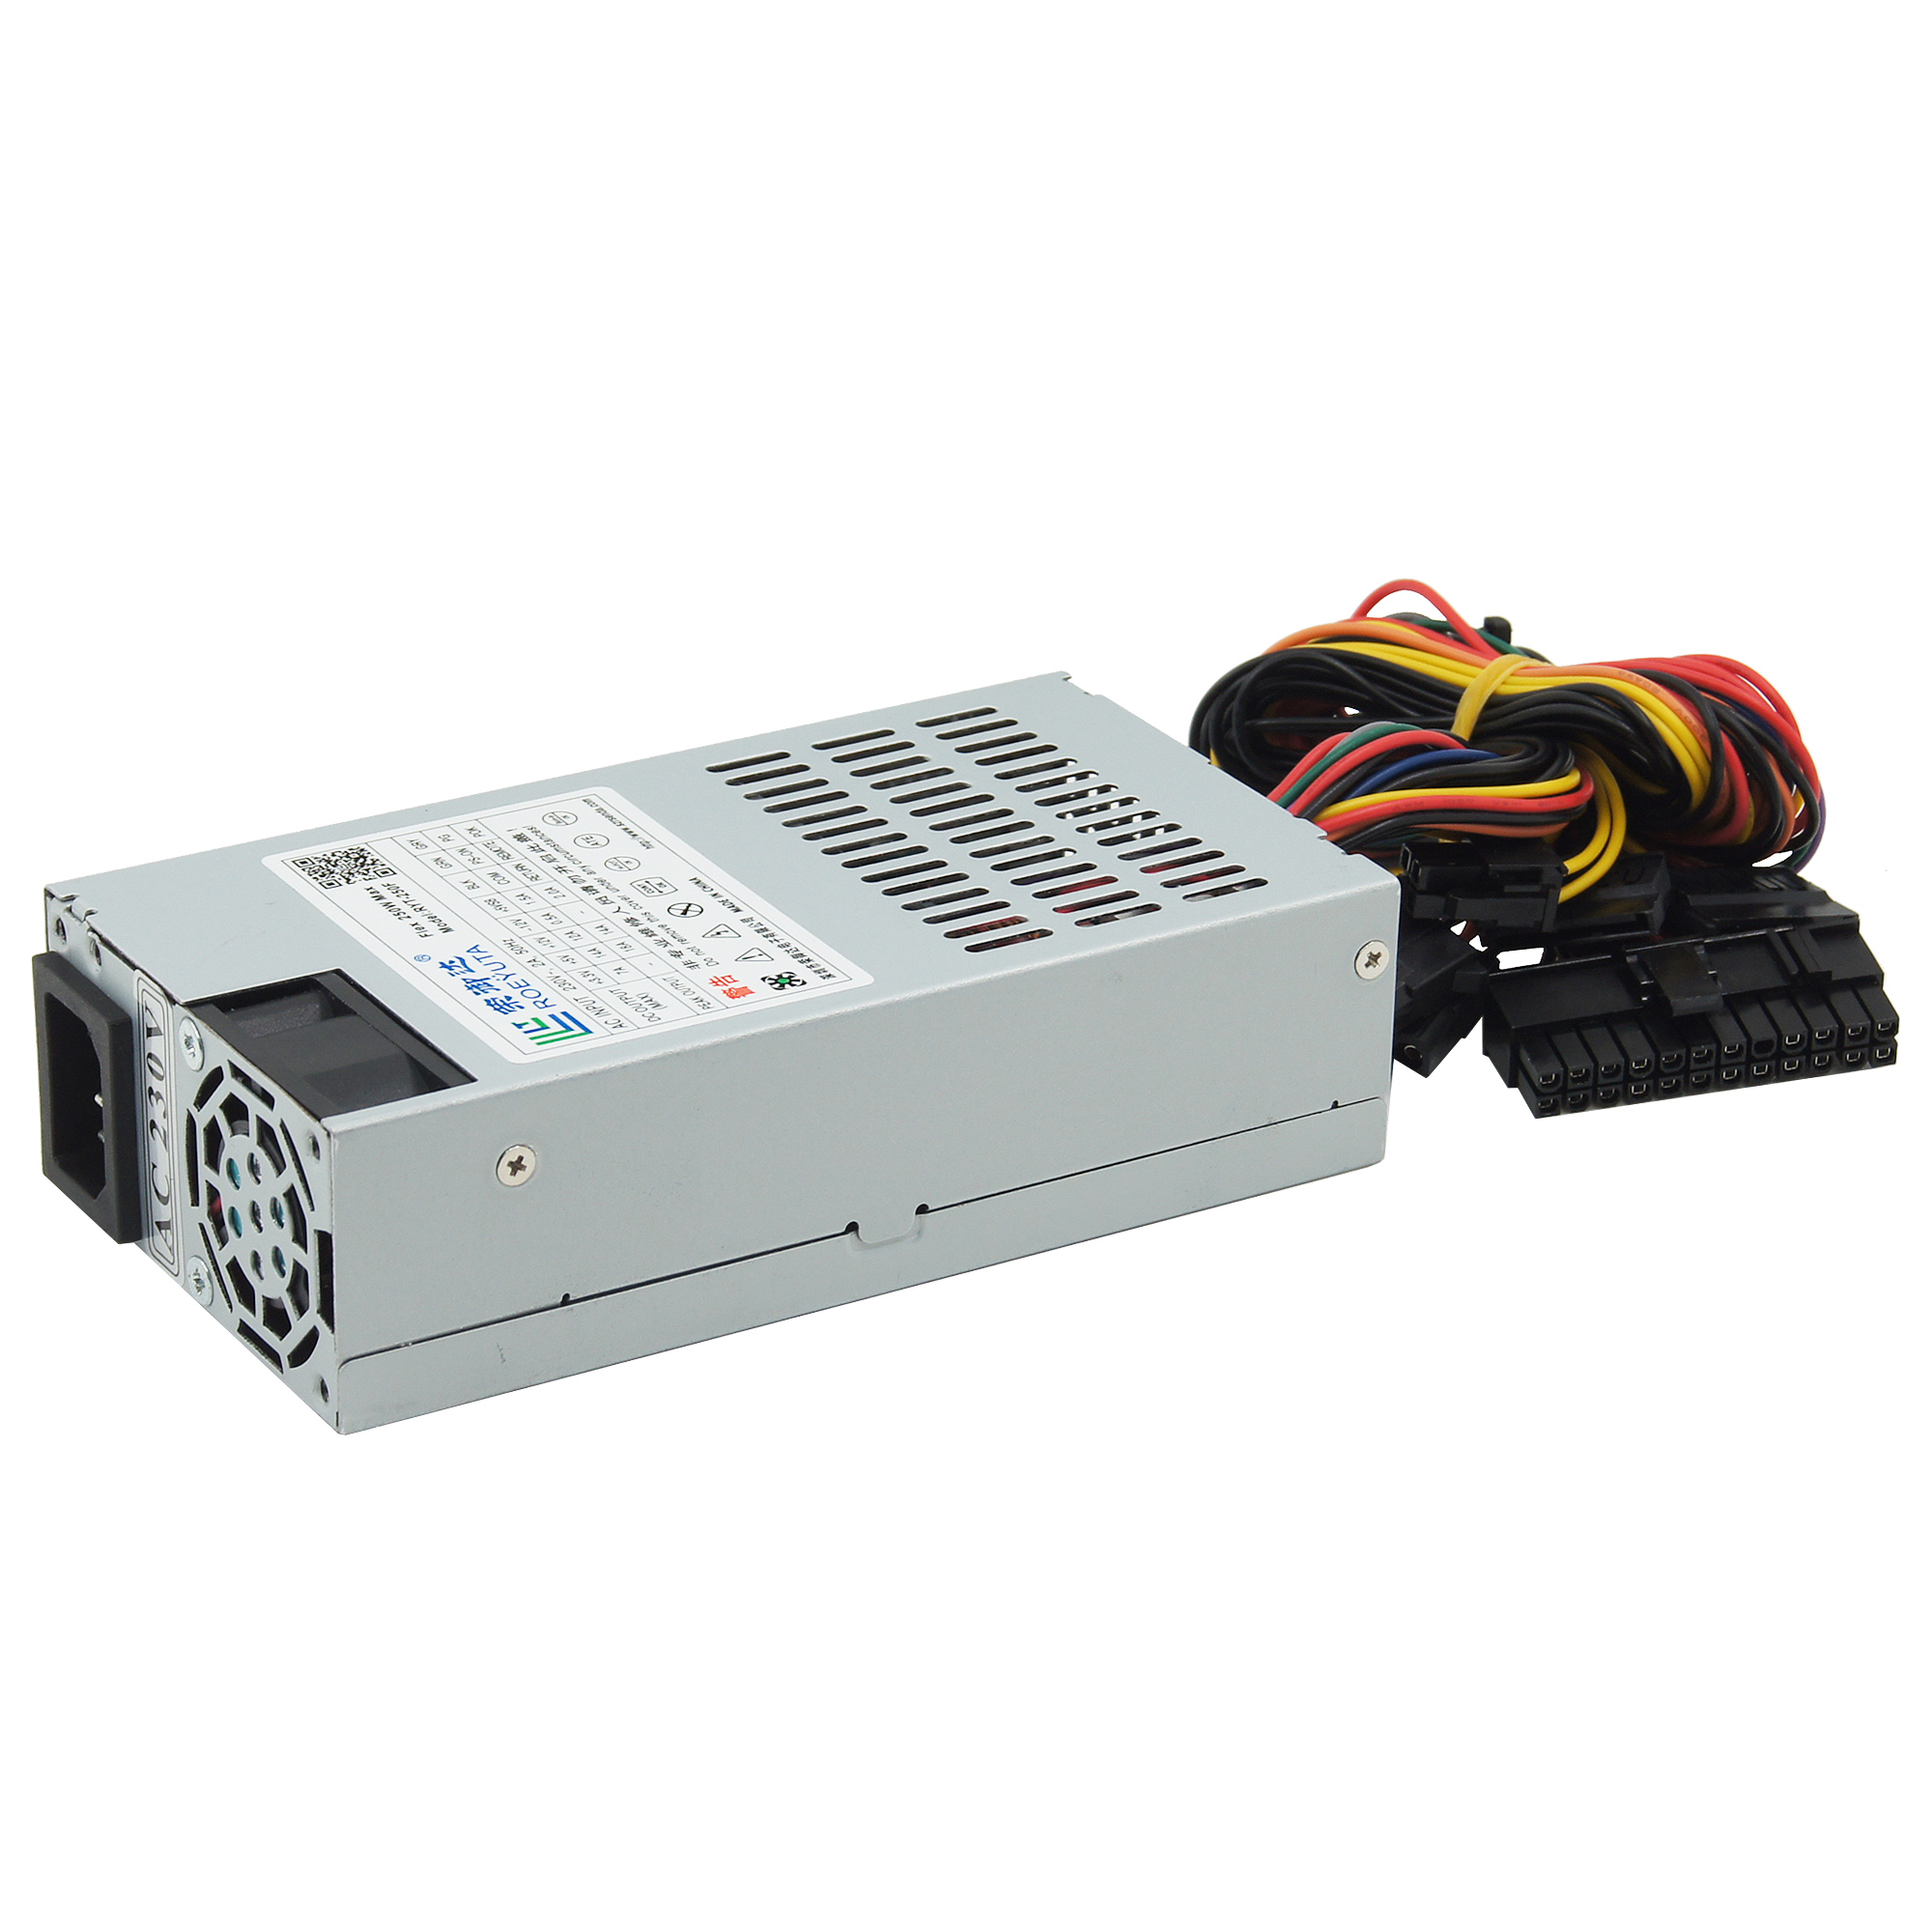 1U FLEX ATX 250W power supply for mini itx pc